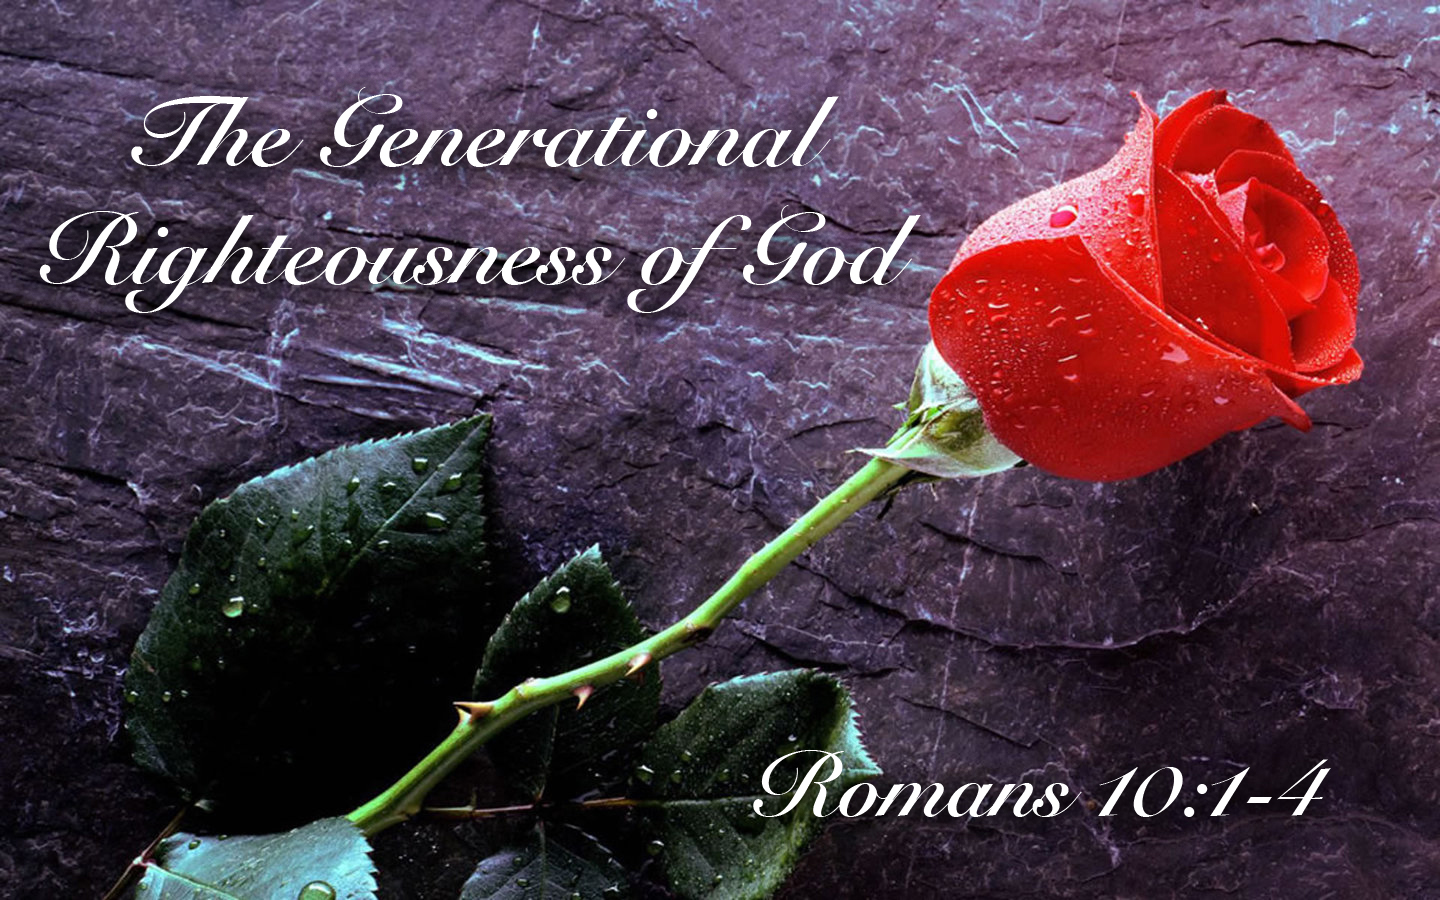 The Generational Righteousness of God